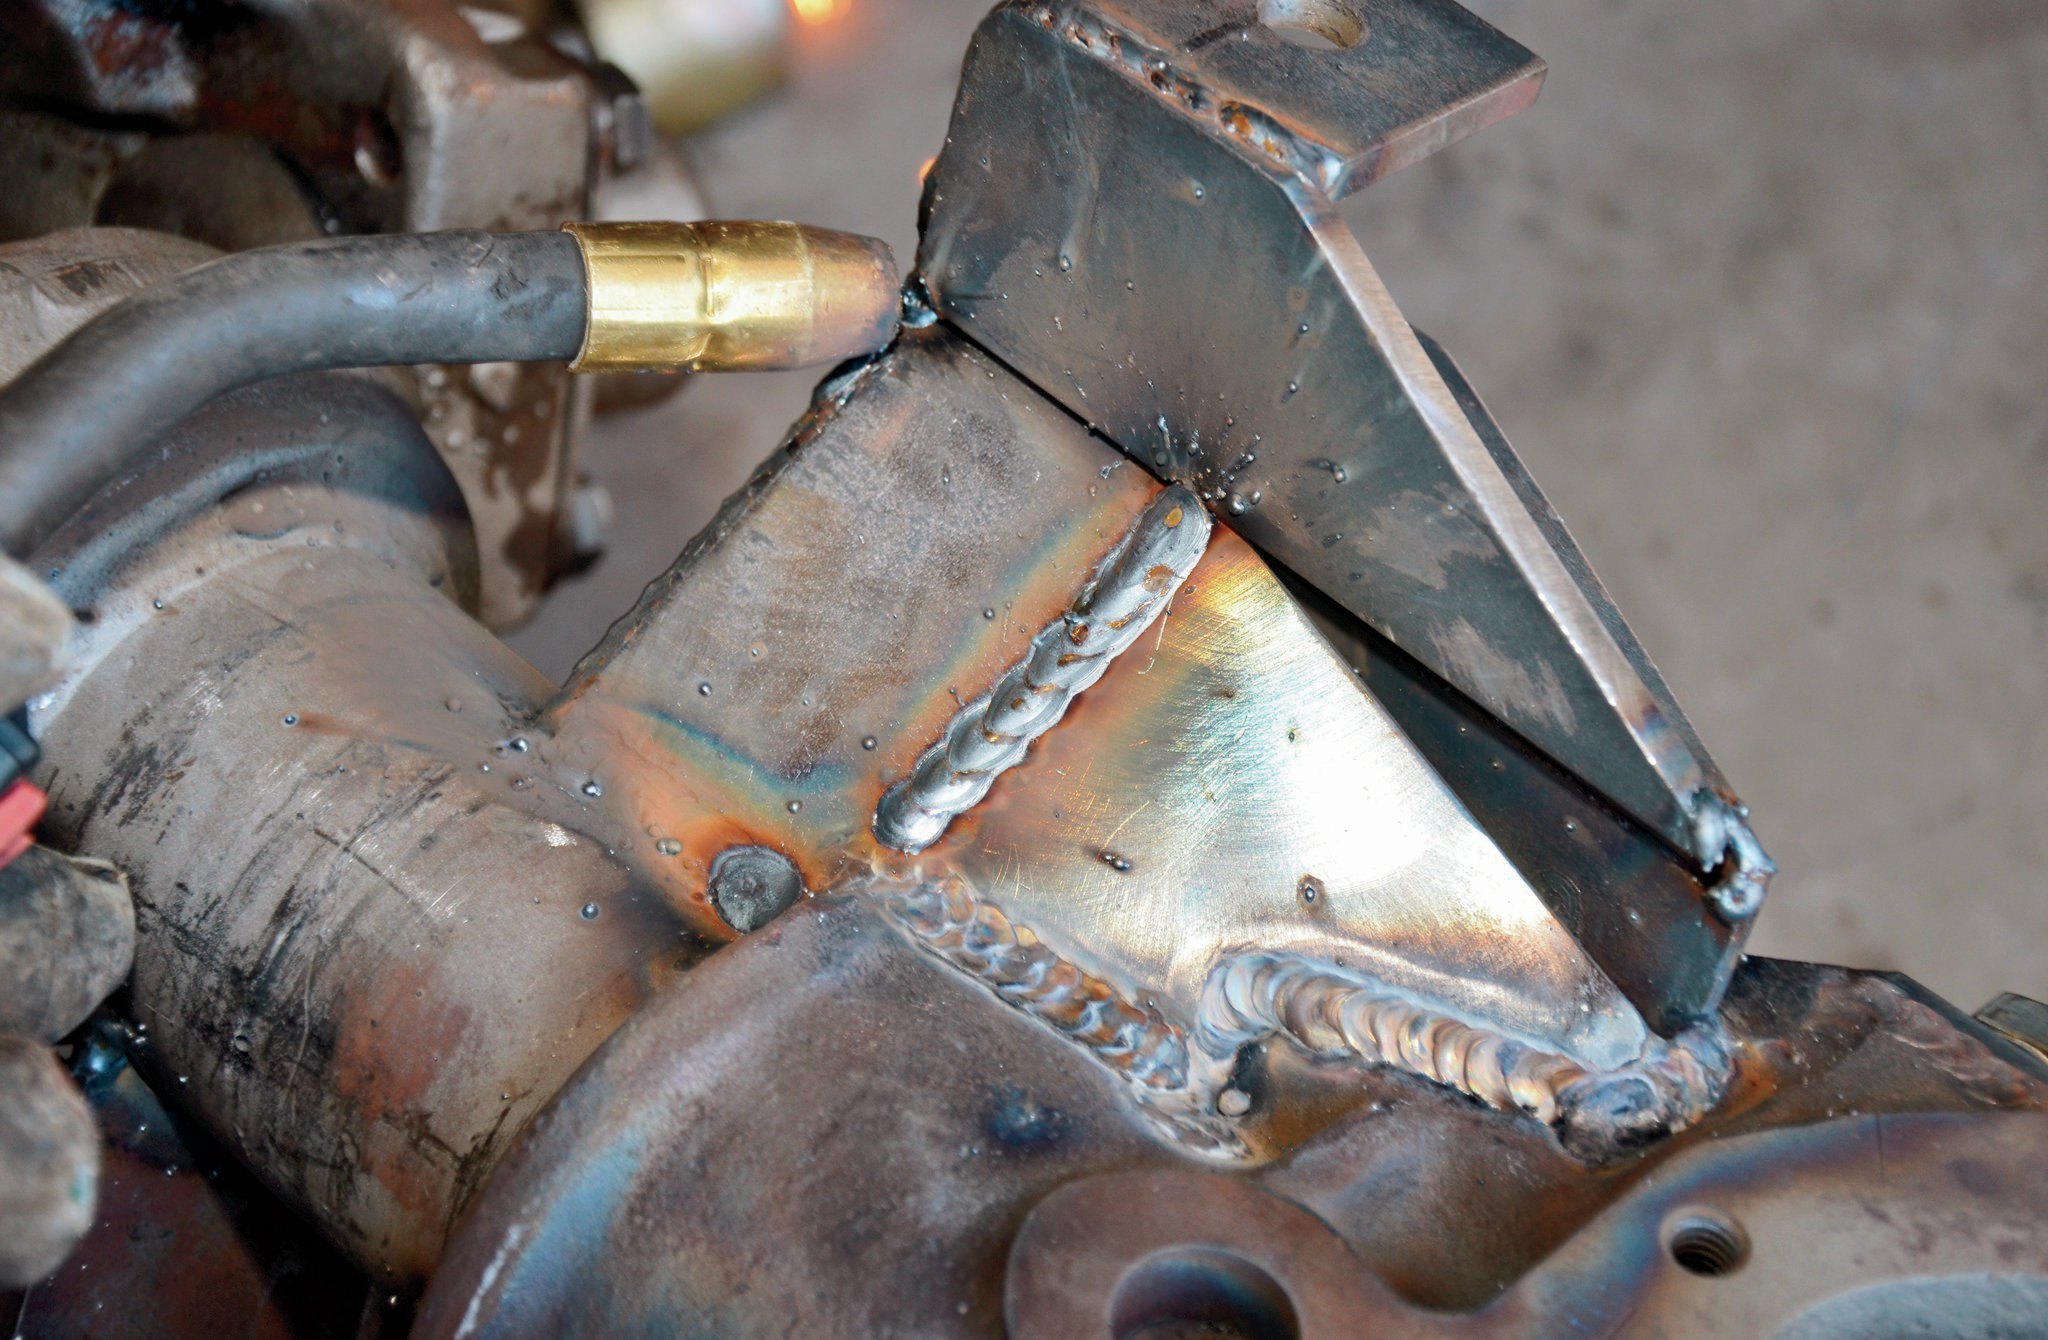 After the axlehousing cooled and we were able to drag it home, we can finally get down to finish-welding all the brackets with our old Hobart MIG welder. With any luck, we won't have to change any of the mounting locations on the axle or frame. Creating good-looking welds comes from practice, practice, and more practice. Also, being sure to clean all of the areas you are going to weld before starting makes a huge difference.